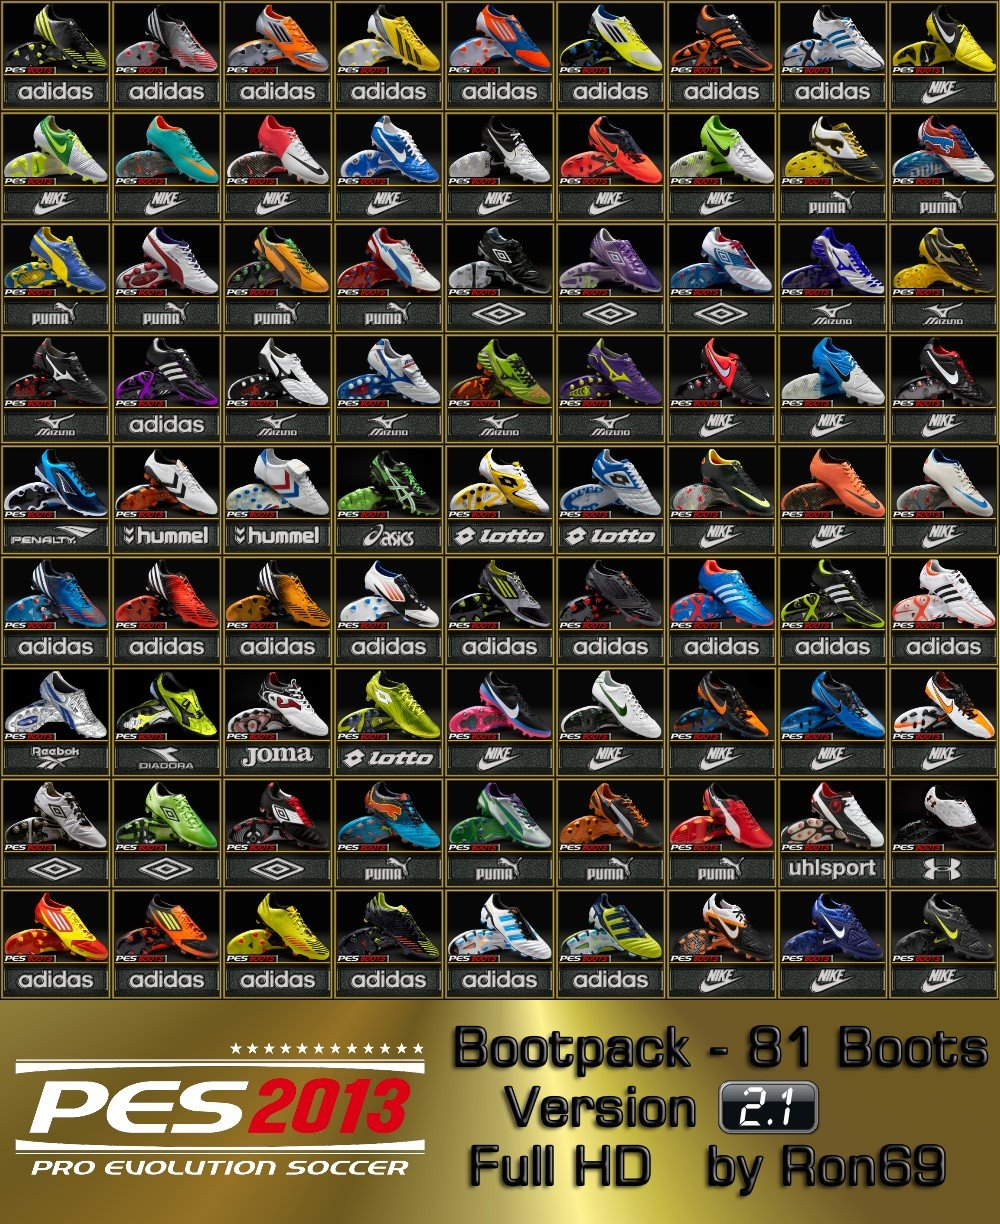 PES 2013 Bootpack 2.1 by Ron69